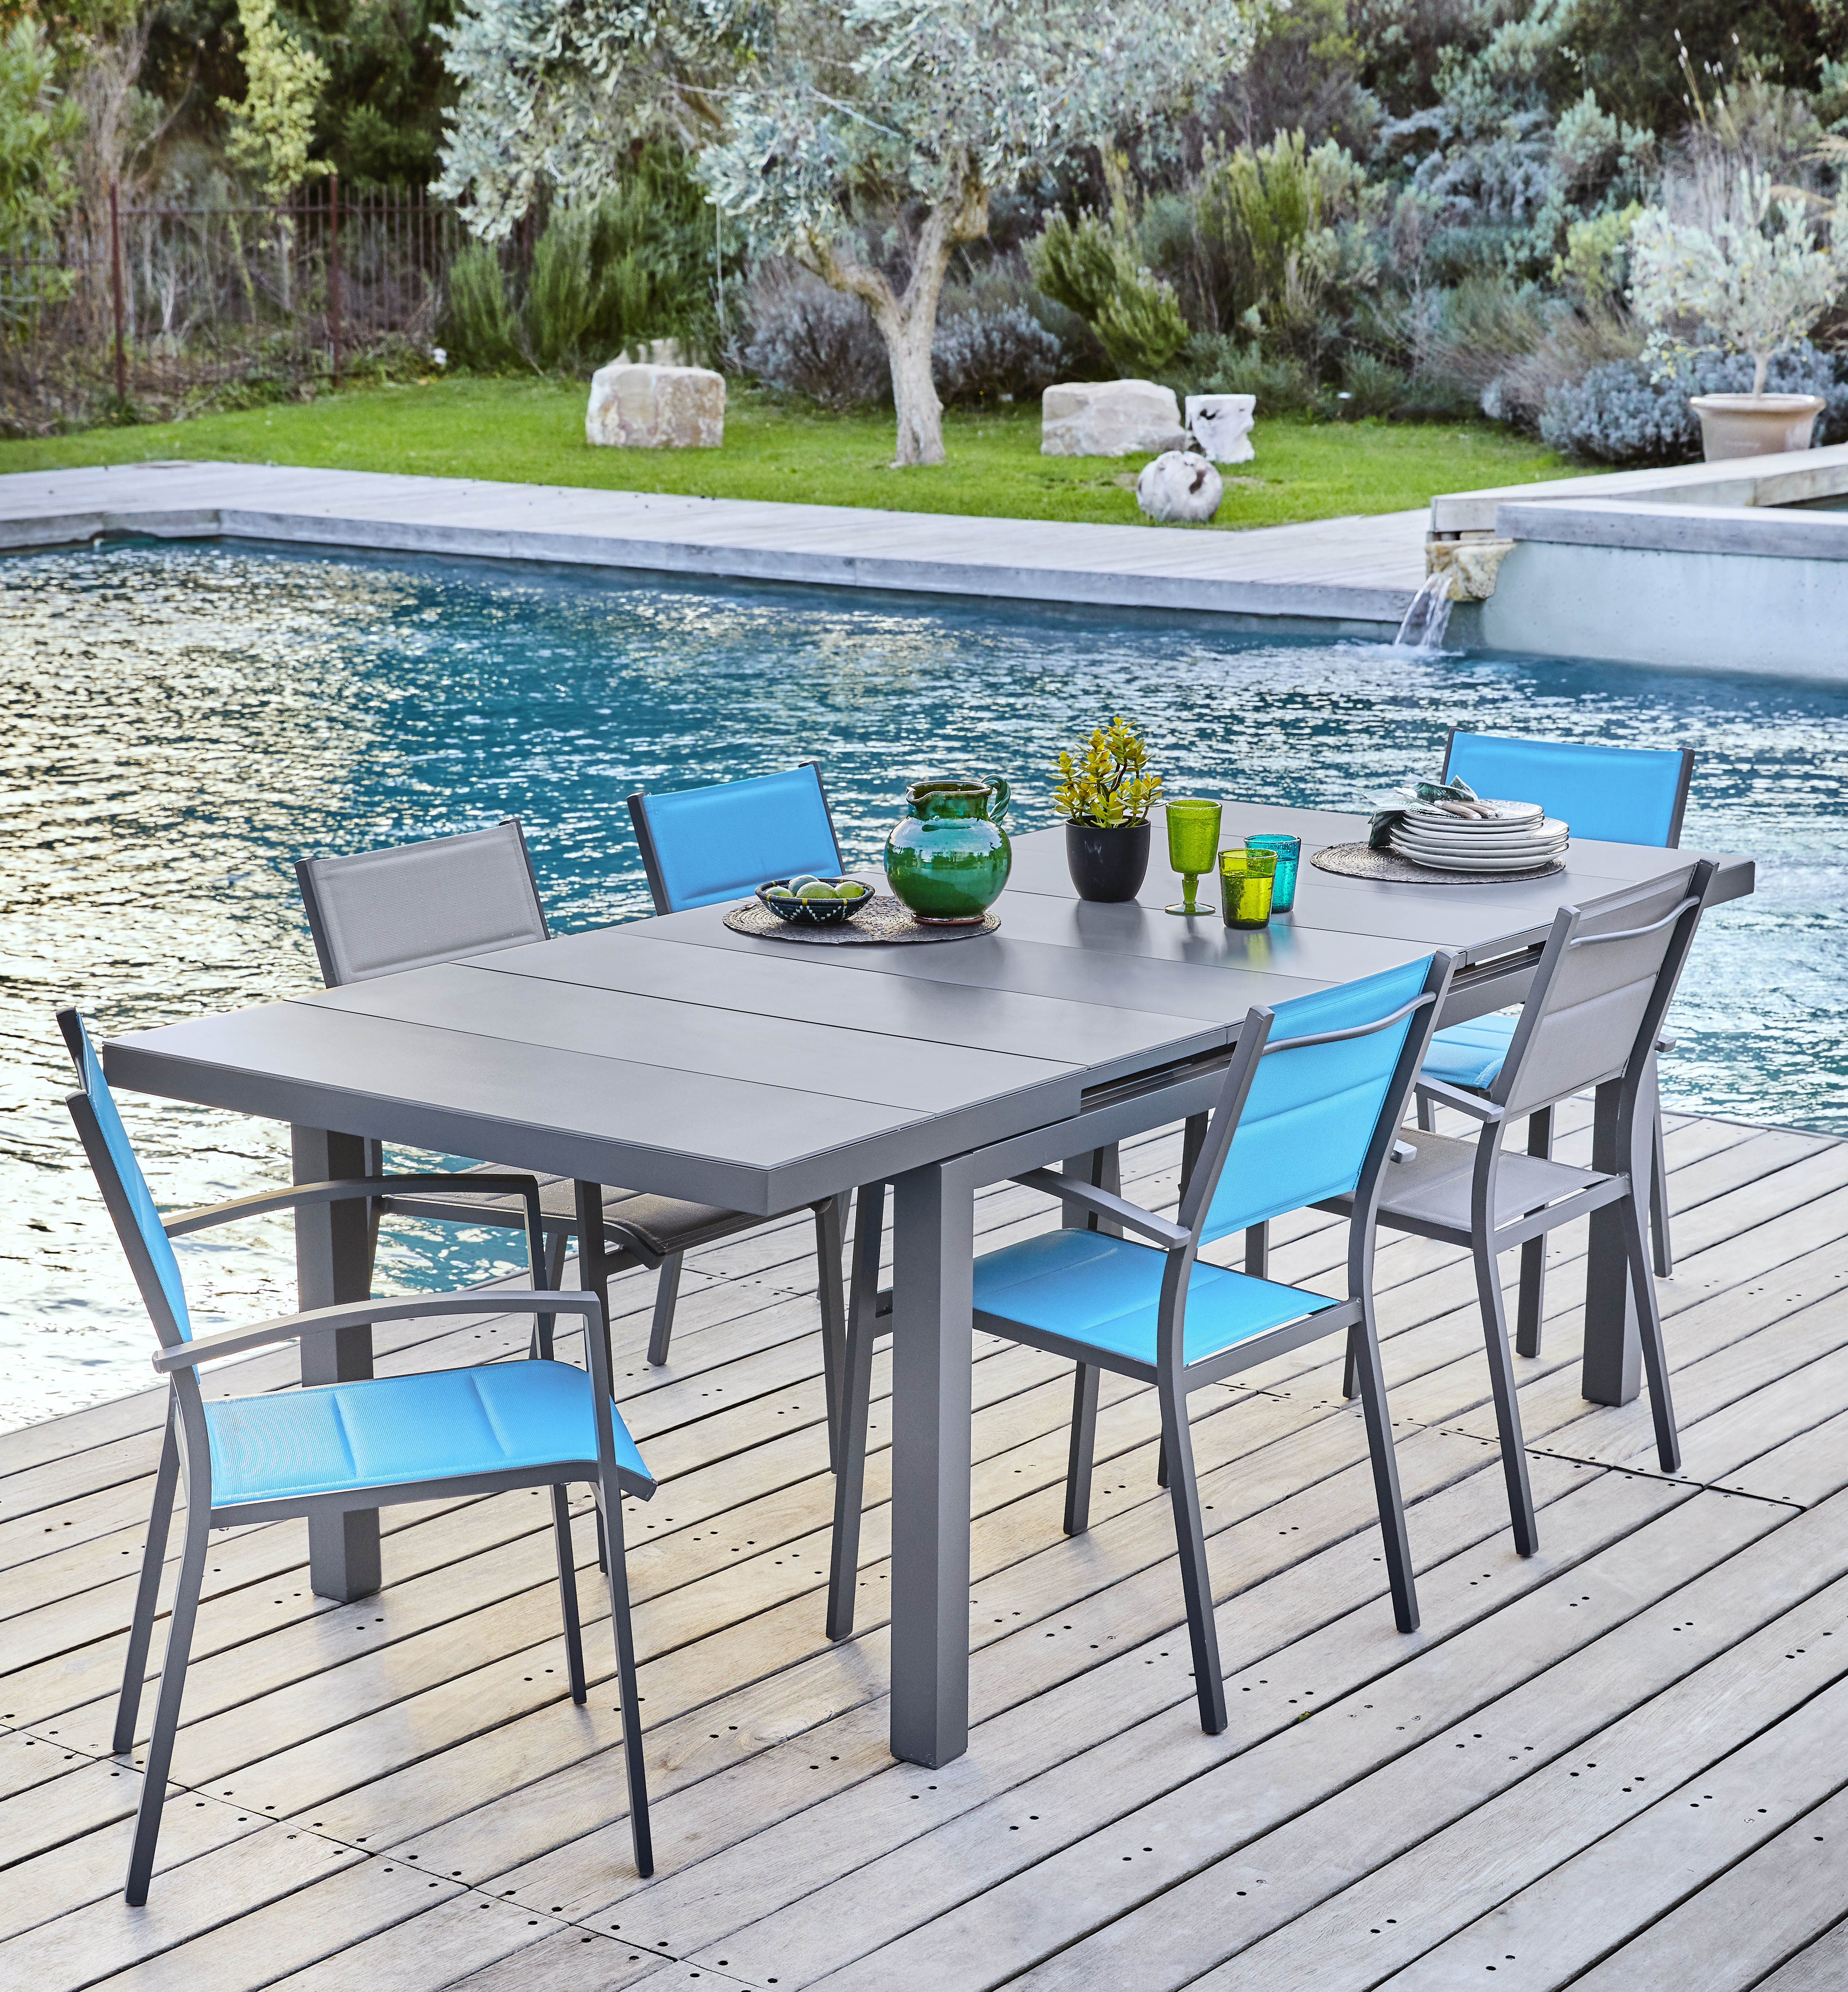 Salon De Jardin Table En Verre Avec Rallonge Hyba Table Canberra Allonge Automatique Gris 100cm X 180cm X